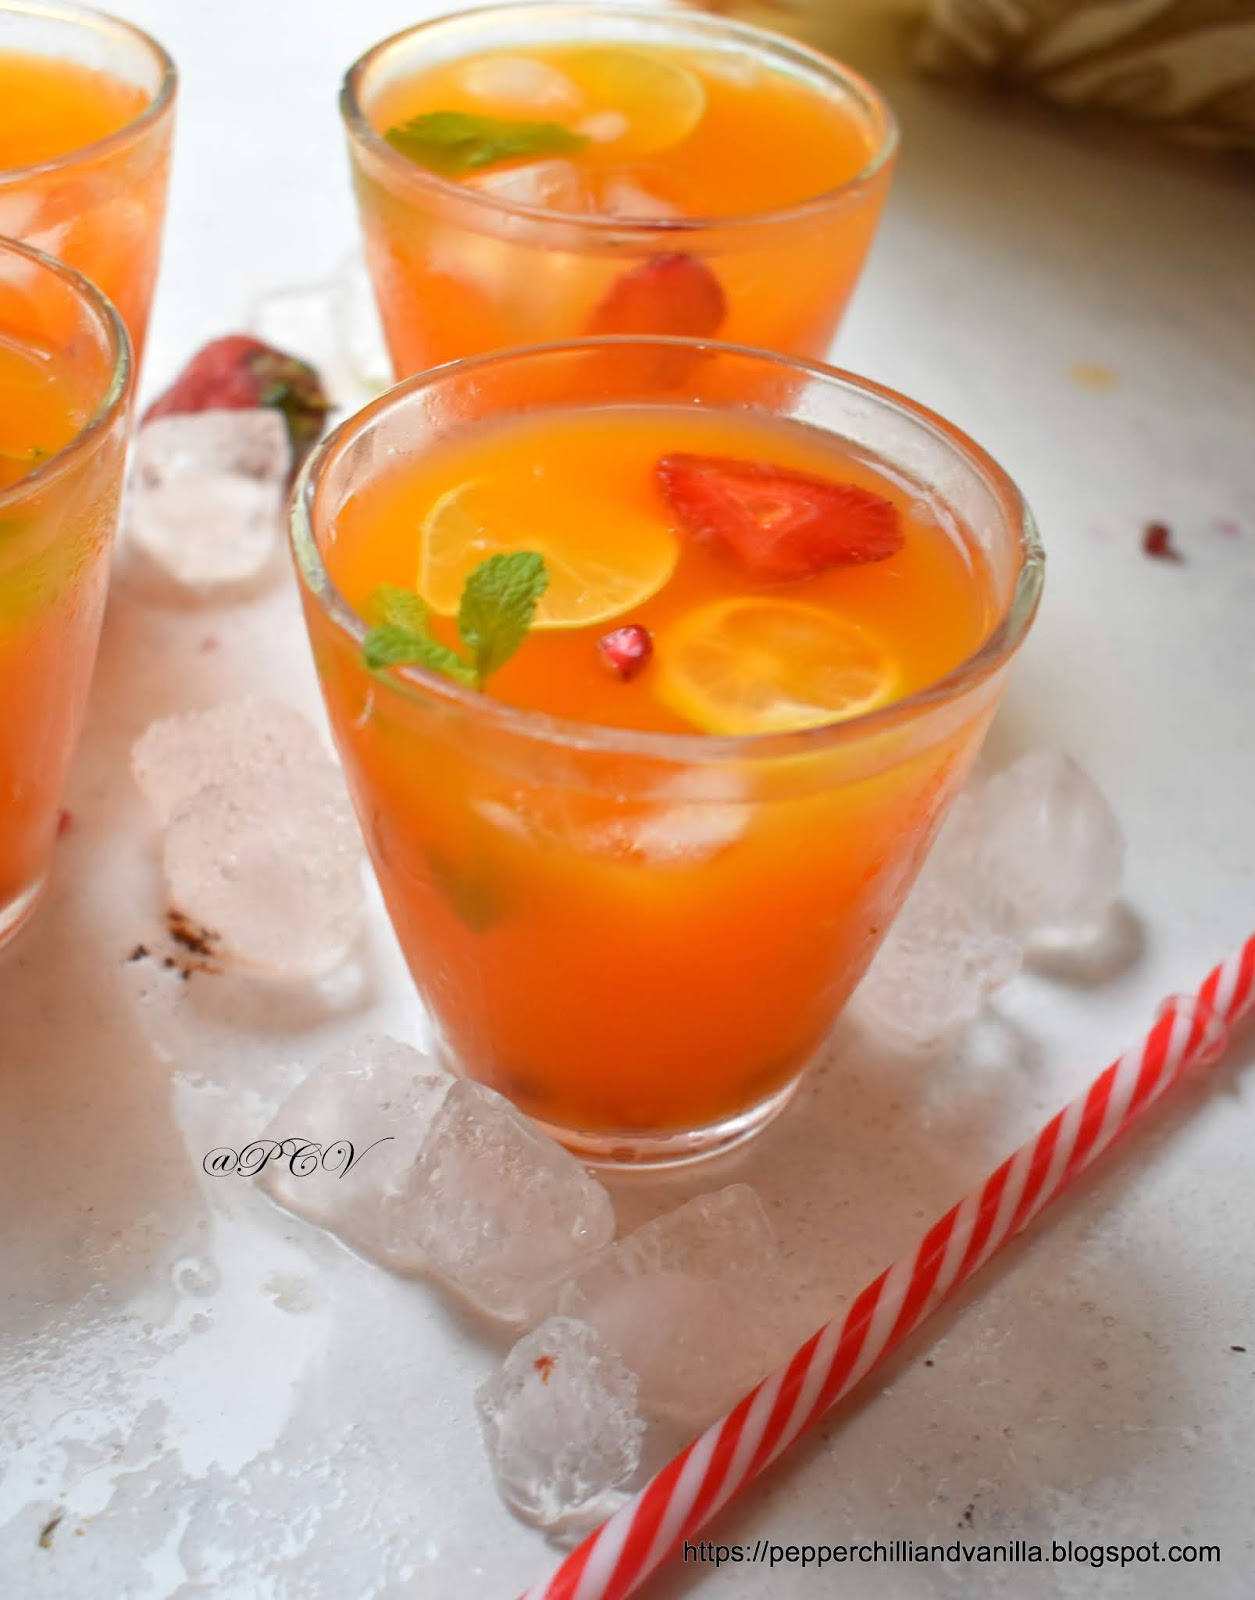 Fruit punch  recipe,non alcoholic  summer cooler ,how to make non alcoholic  fruit punch ,fruit punch recipe,fruit punch without Alcohol  ,kid friendly fruit punch  ,summer cooler fruit punch ,mixed fruit punch .